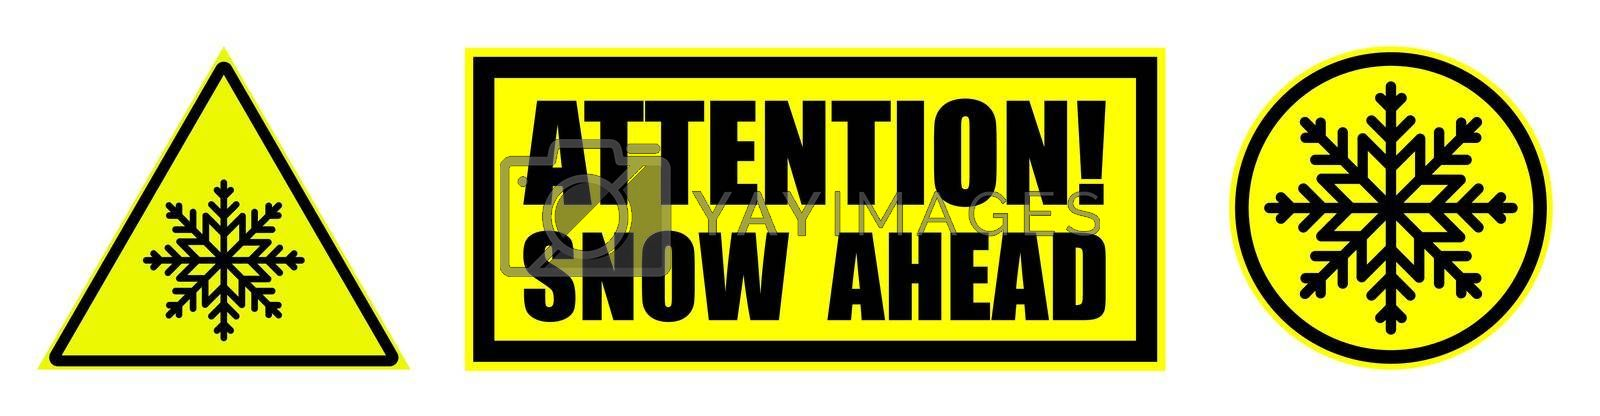 low temperature, snow ahead warning attention sign on yellow. Safety and warning for snow on road. Set of yellow black danger signs. Isolated vector